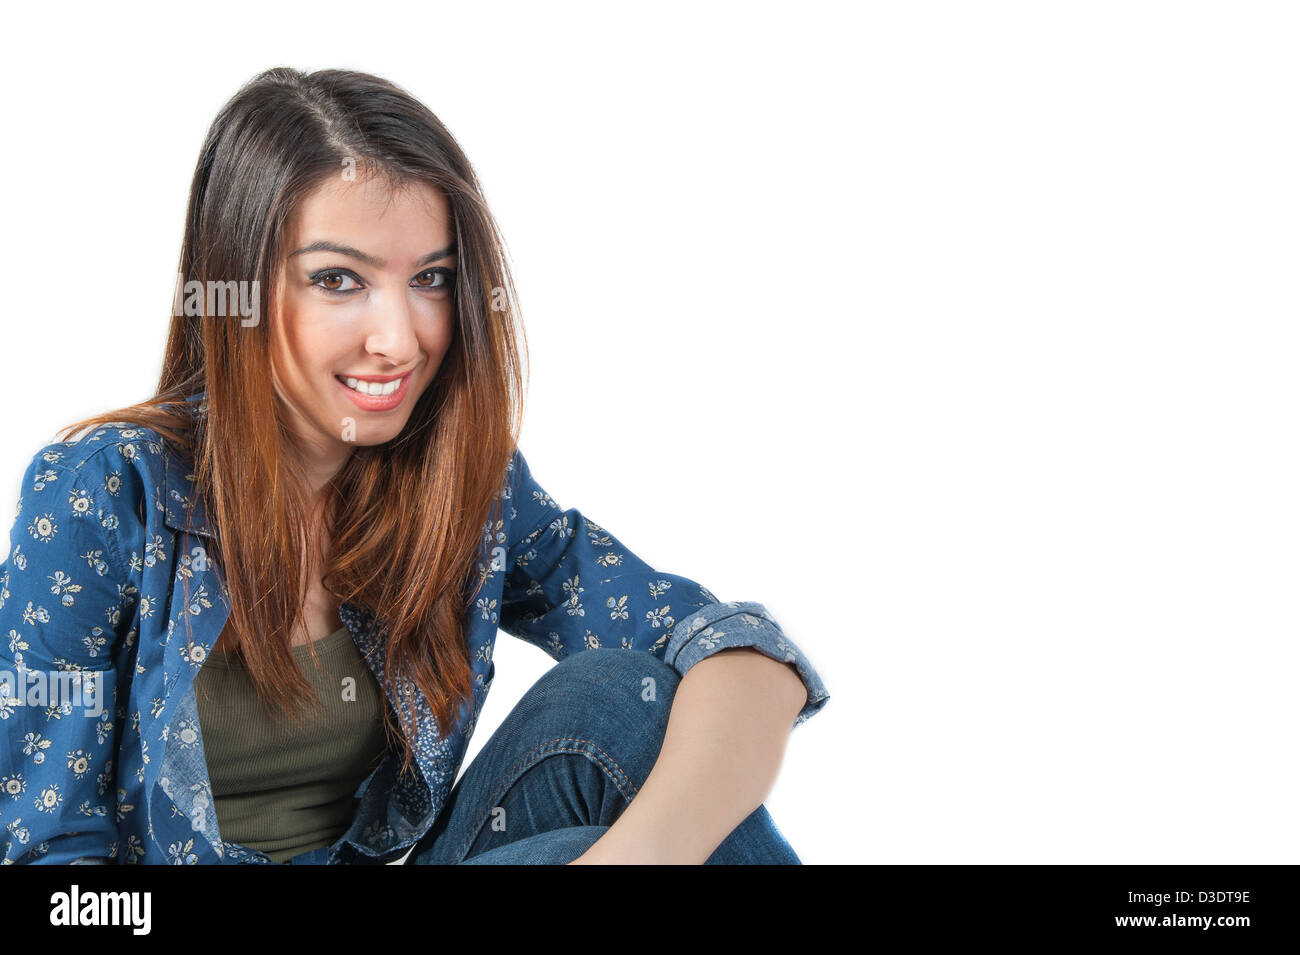 girl looking inviting Isolated on white background - Stock Image